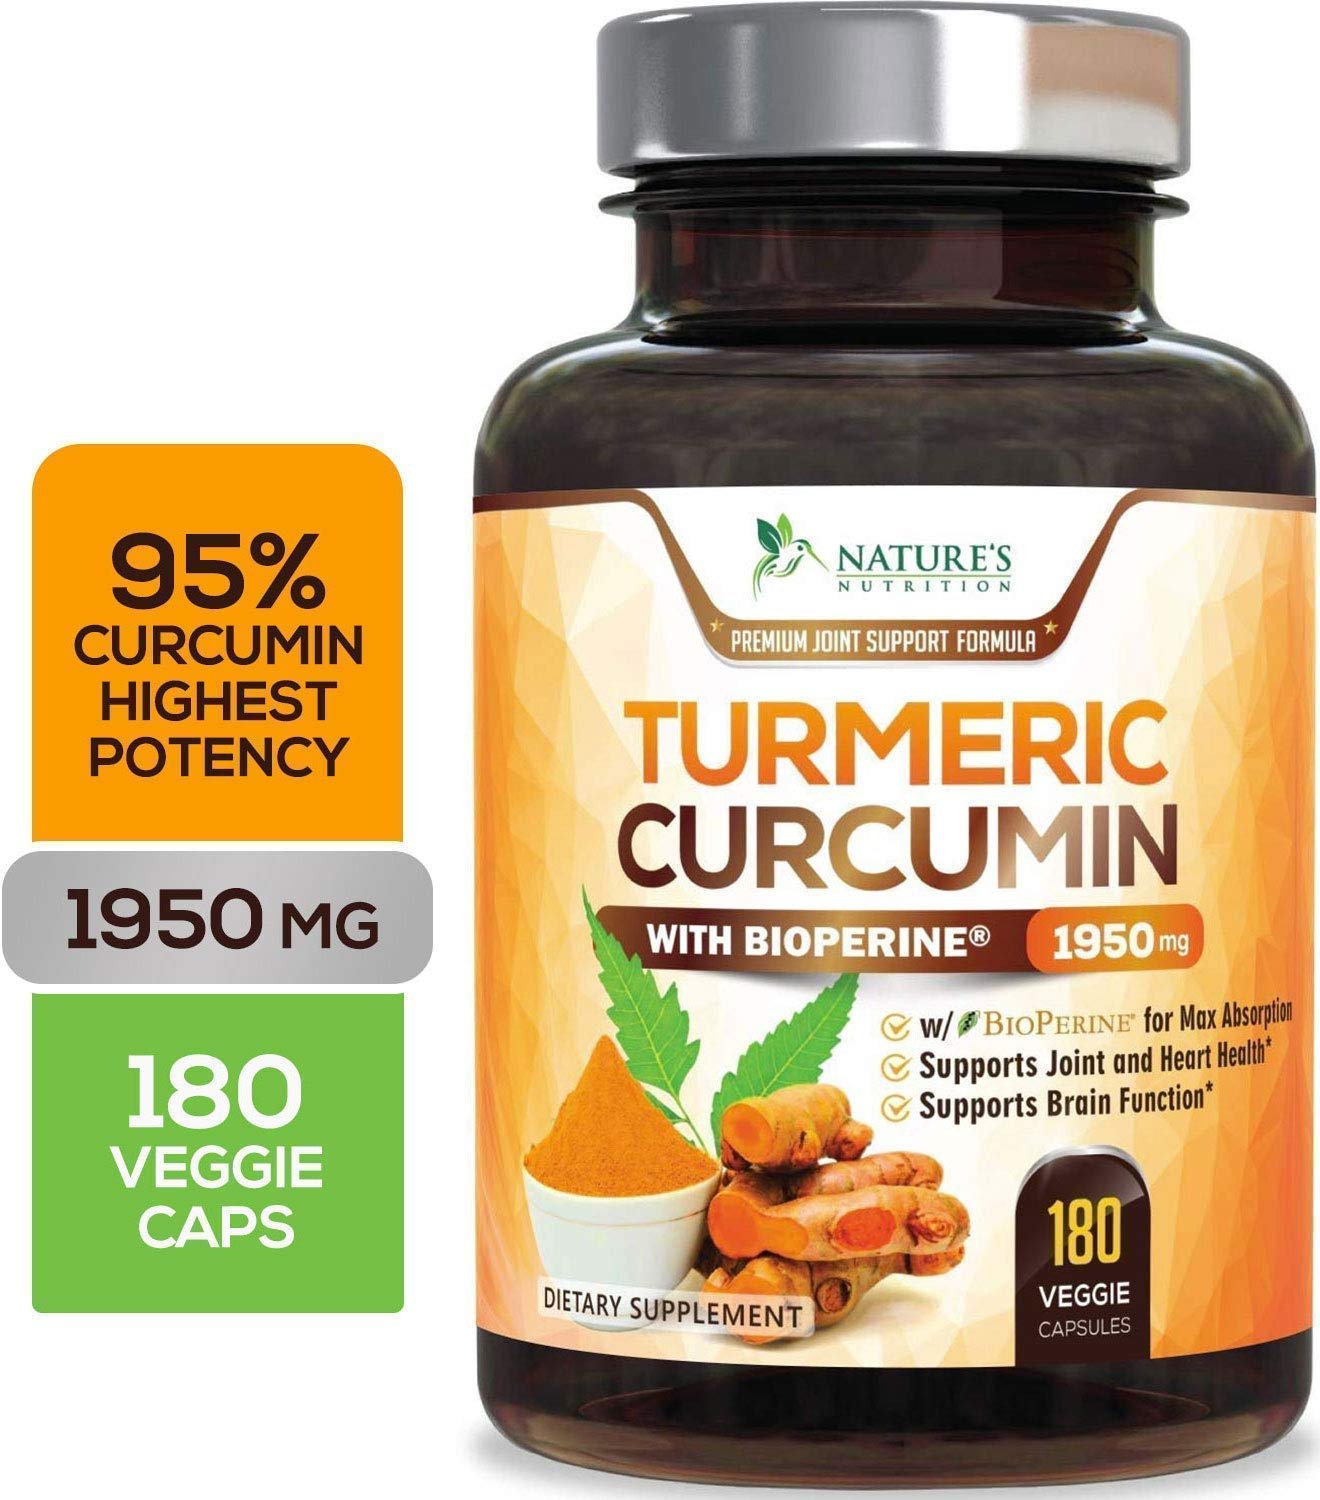 Turmeric Curcumin Highest Potency 95% Standardized Curcuminoids 1950mg with Bioperine for Best Absorption, Made in USA, Best Vegan Joint Pain Relief Turmeric Pills by Natures Nutrition - 180 Capsules